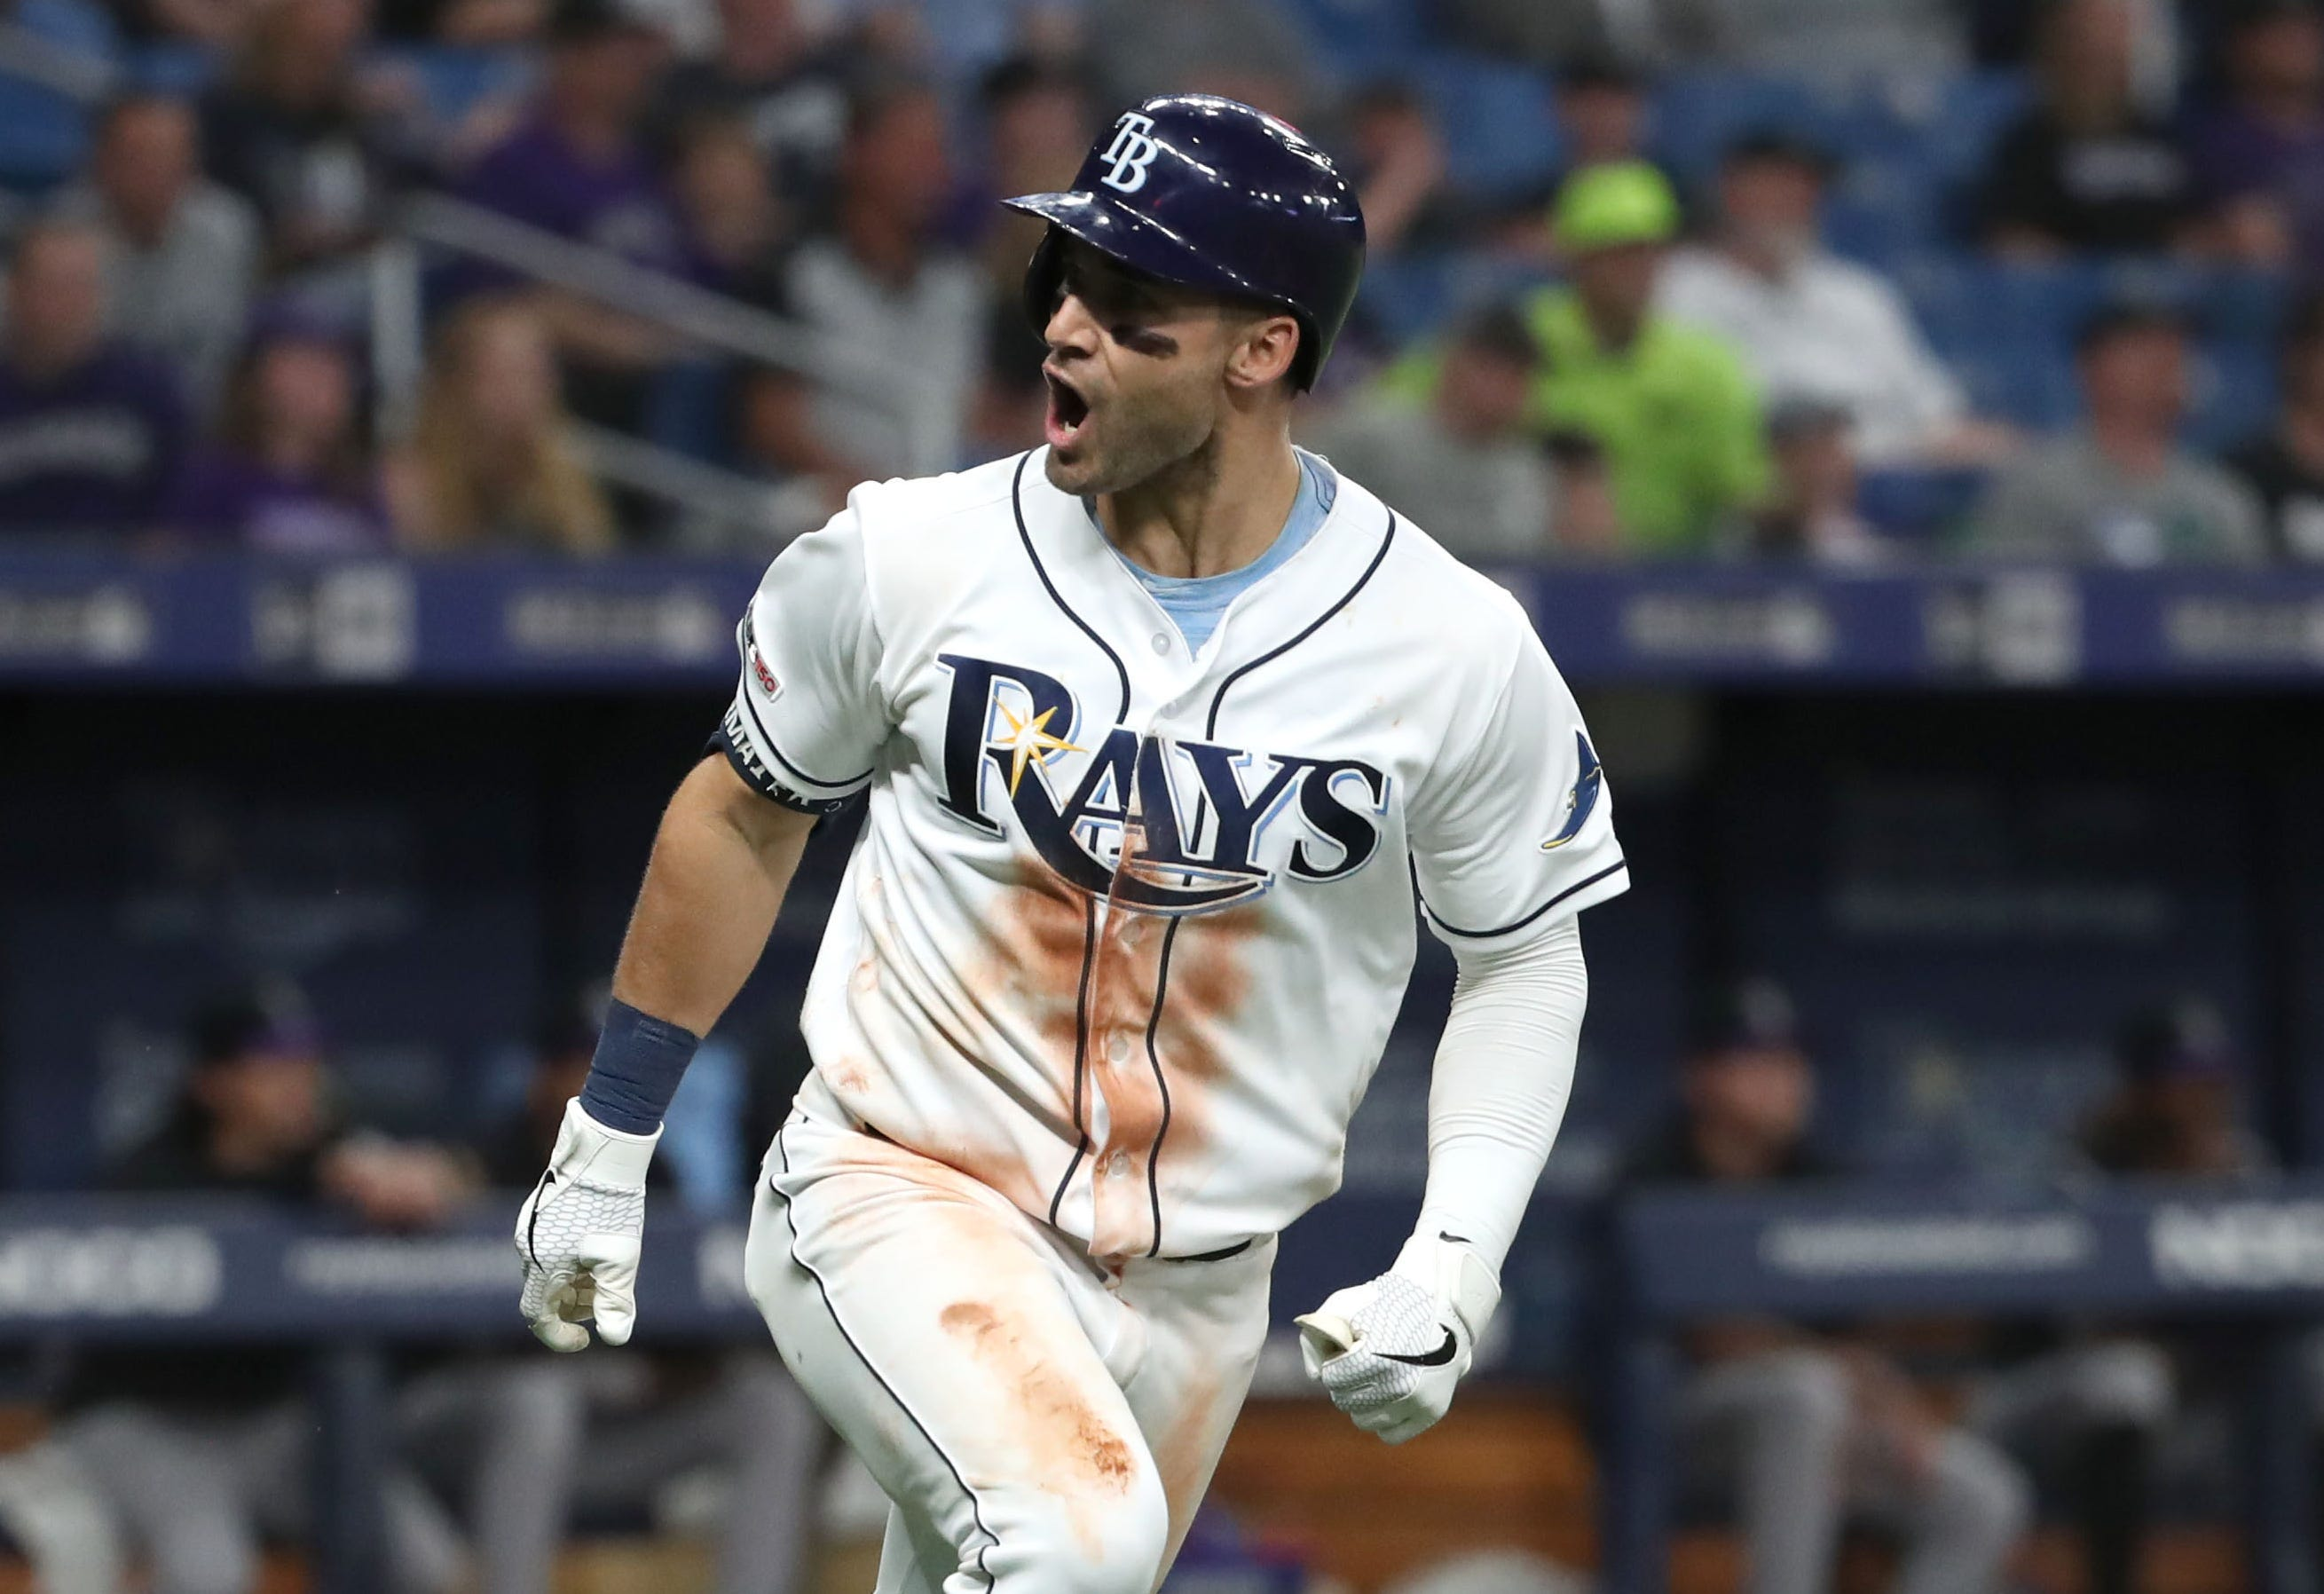 Kevin Kiermaier has gotten off to a hot start.